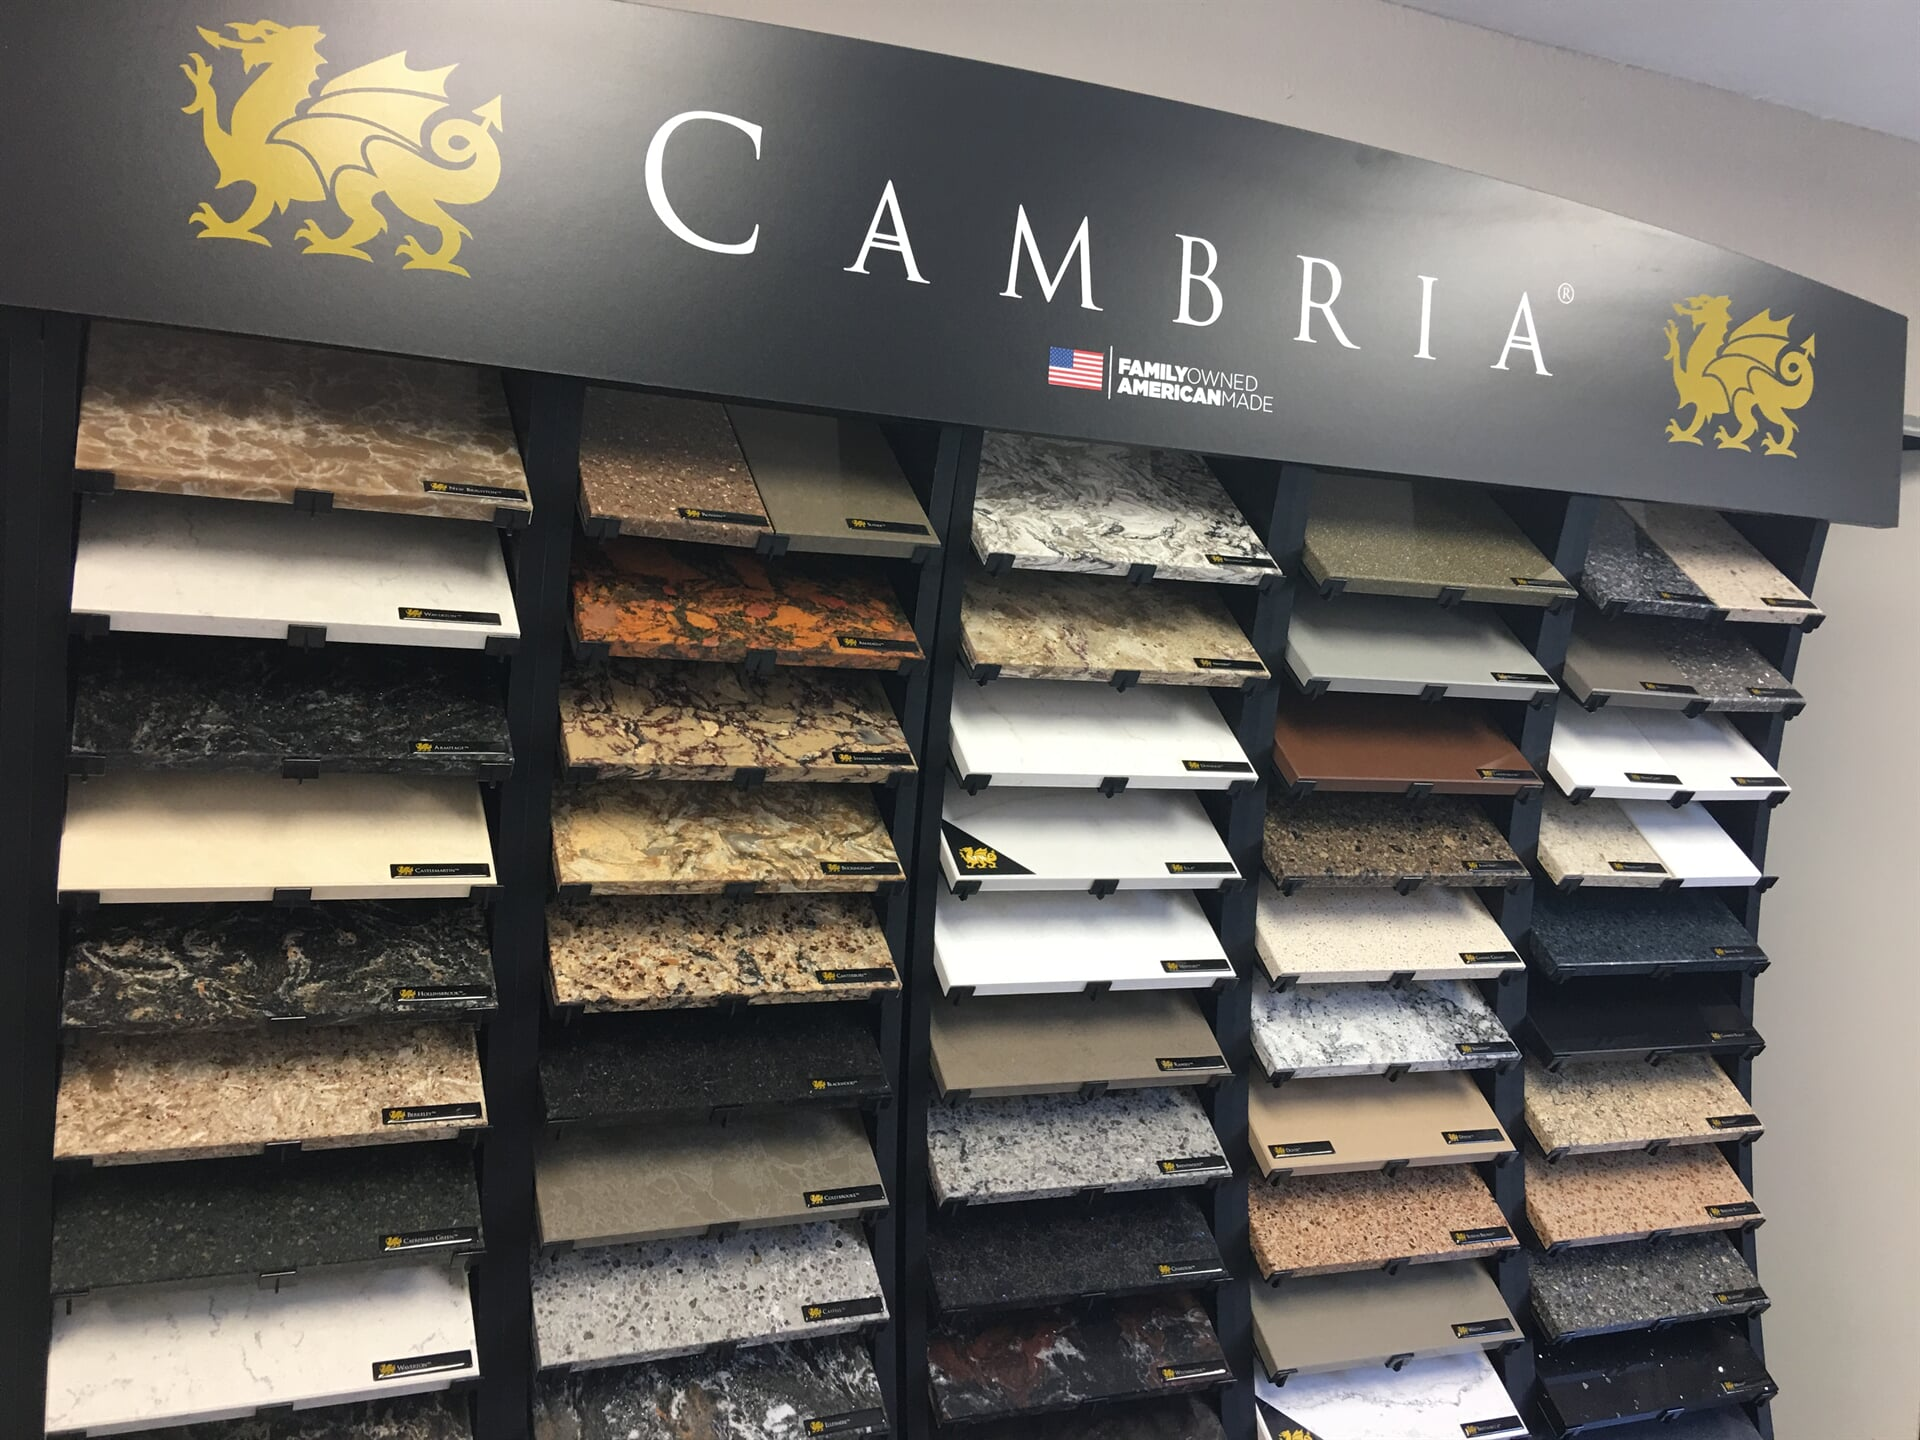 Our Cambria selection in our showroom